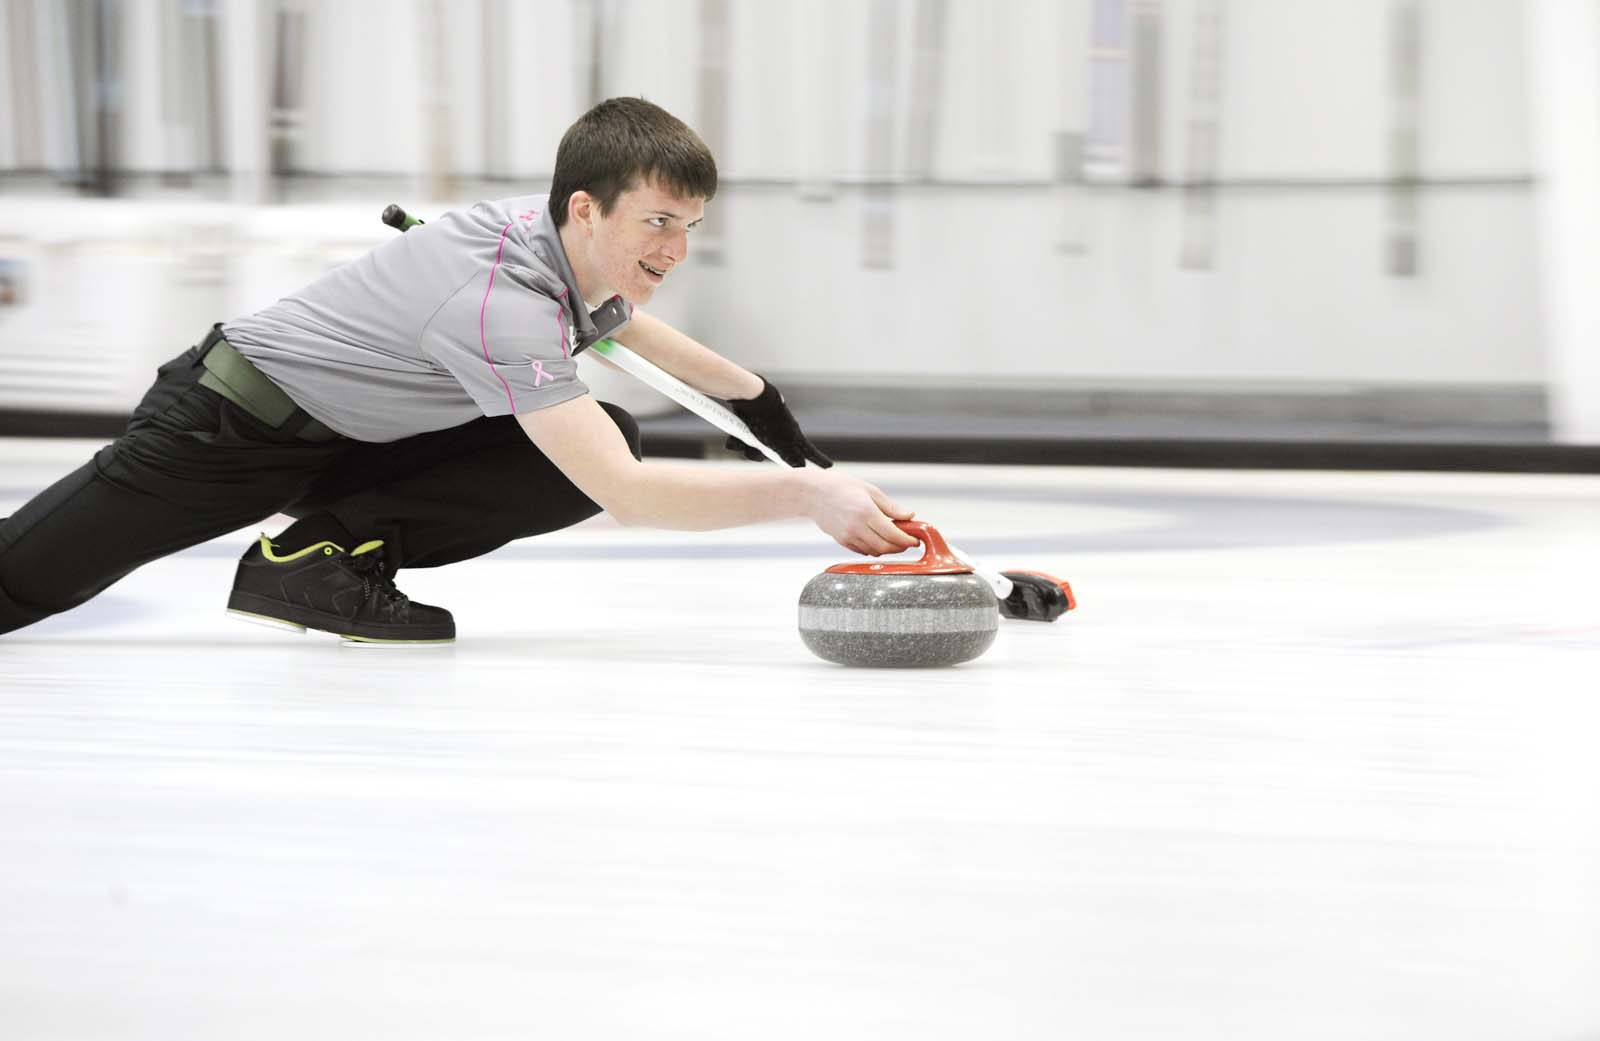 Curling like a champion